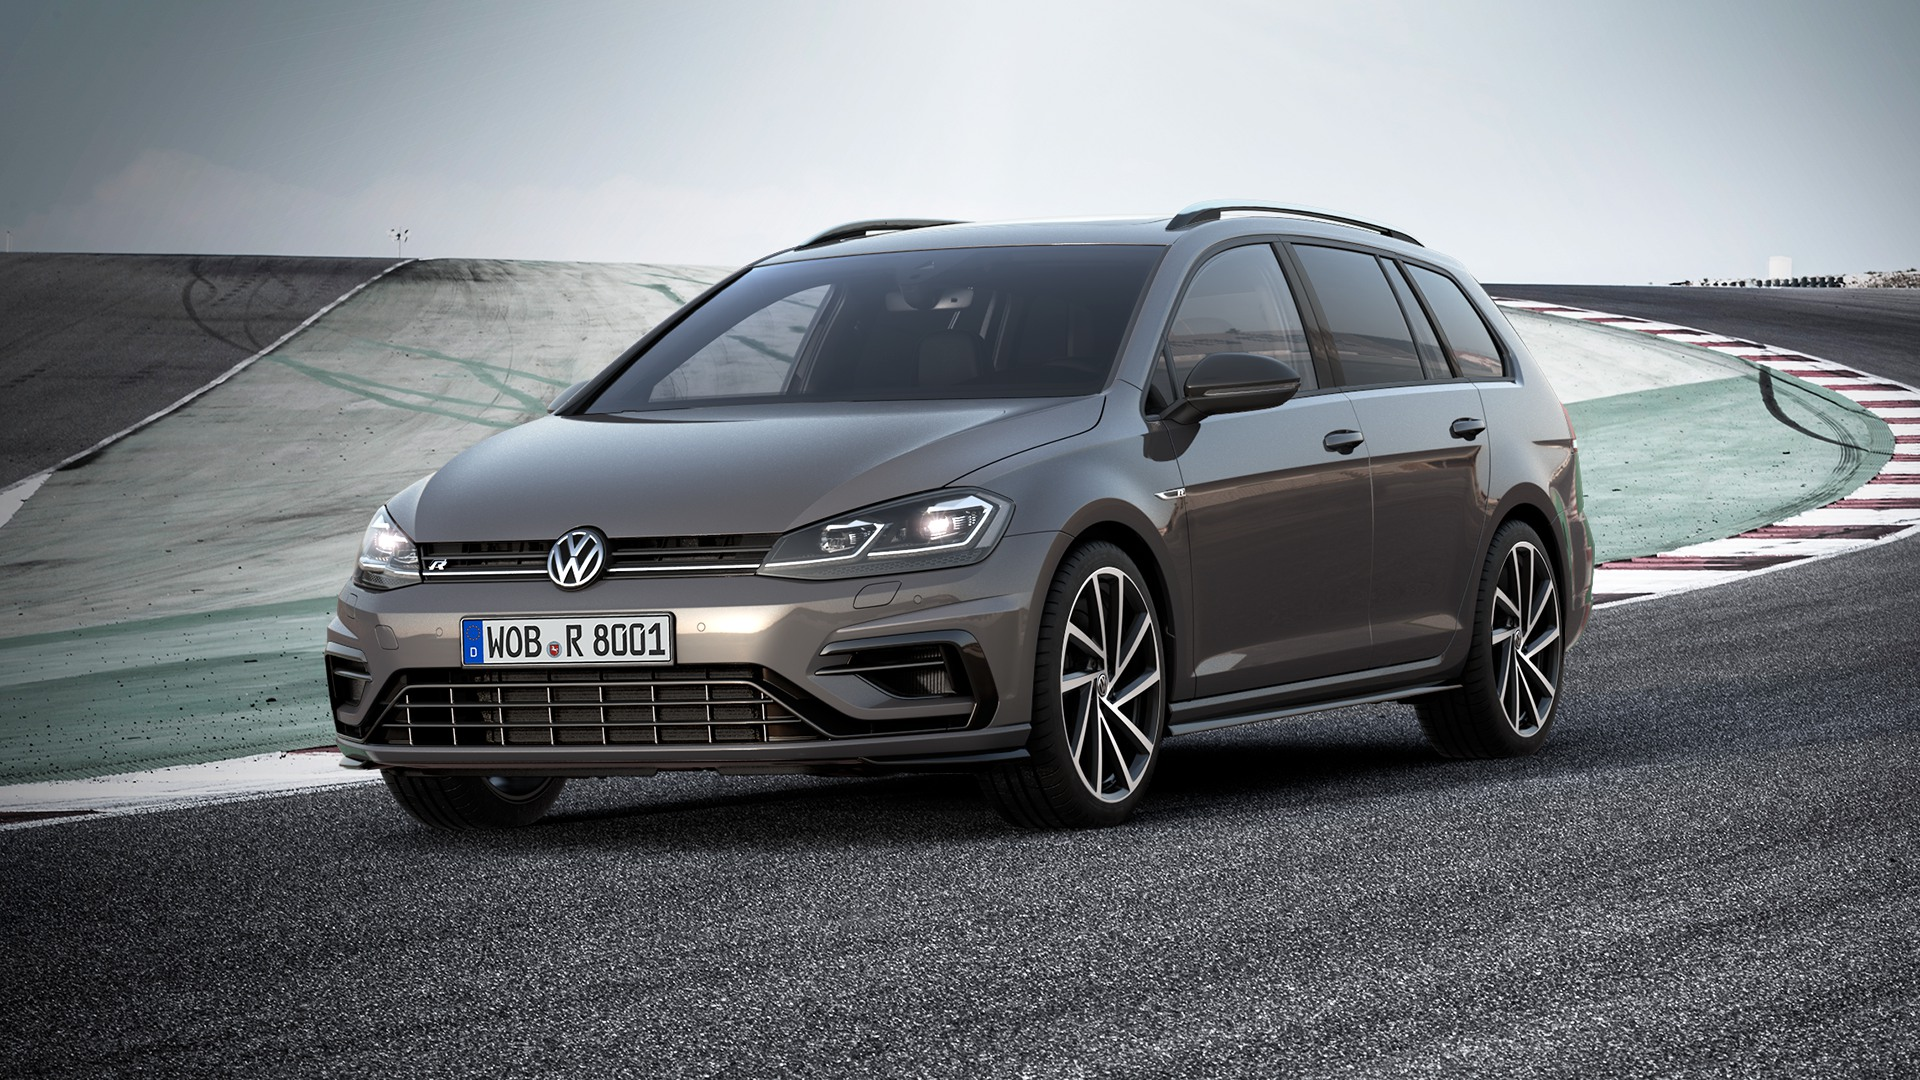 mk 7 5 estate best colour black or indium grey vw golf. Black Bedroom Furniture Sets. Home Design Ideas